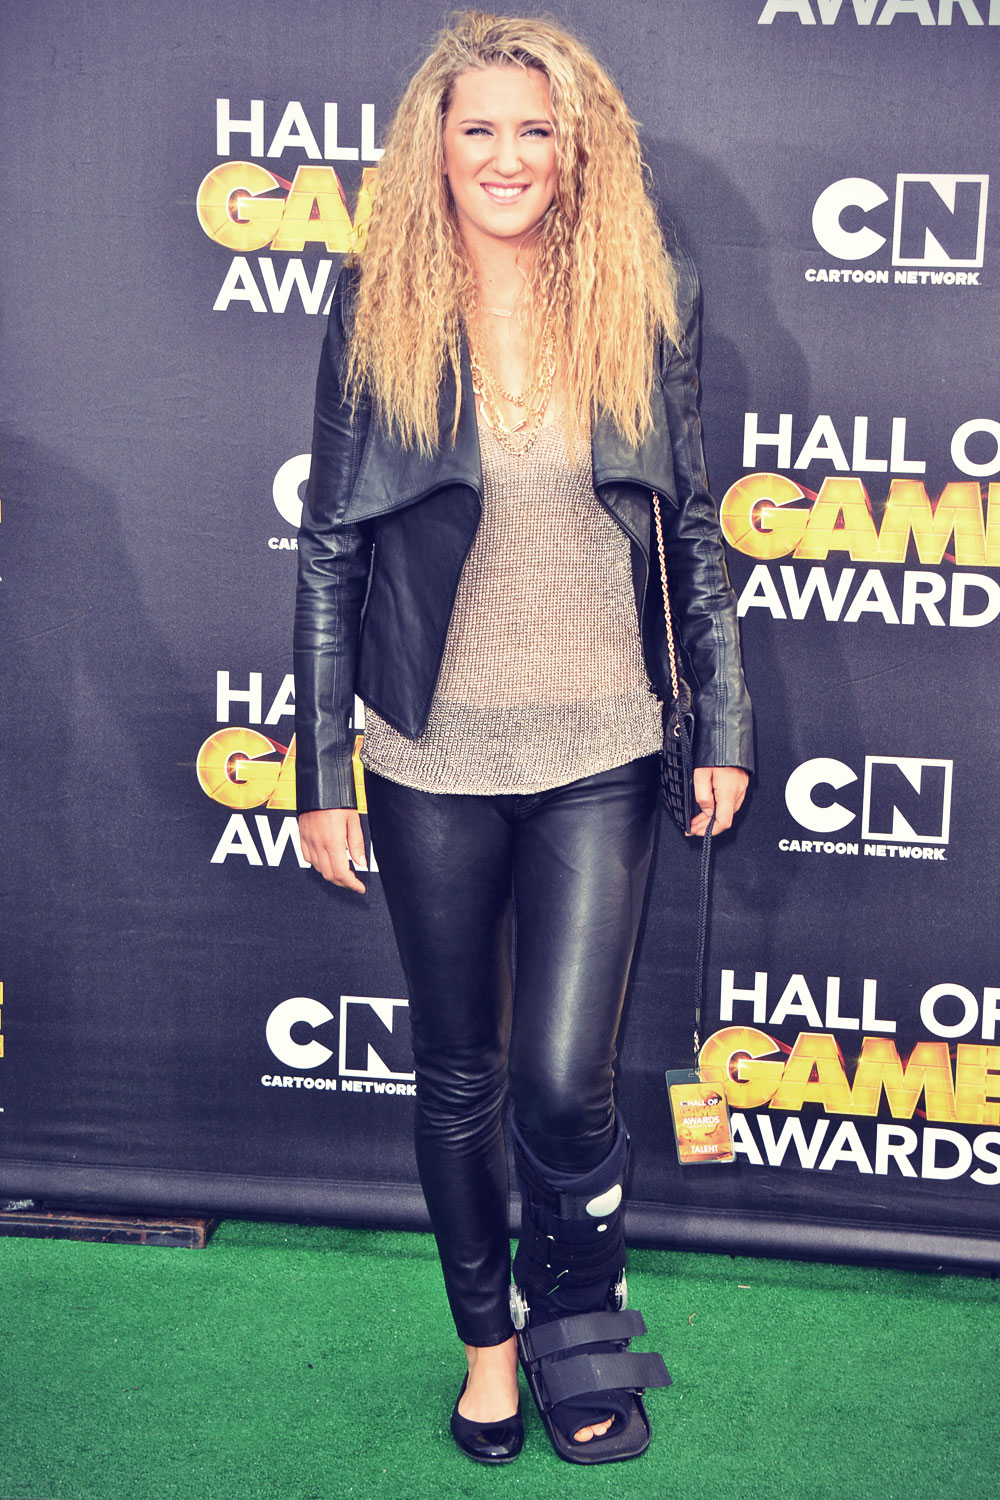 Victoria Azarenka attends 4th Annual Cartoon Network Hall